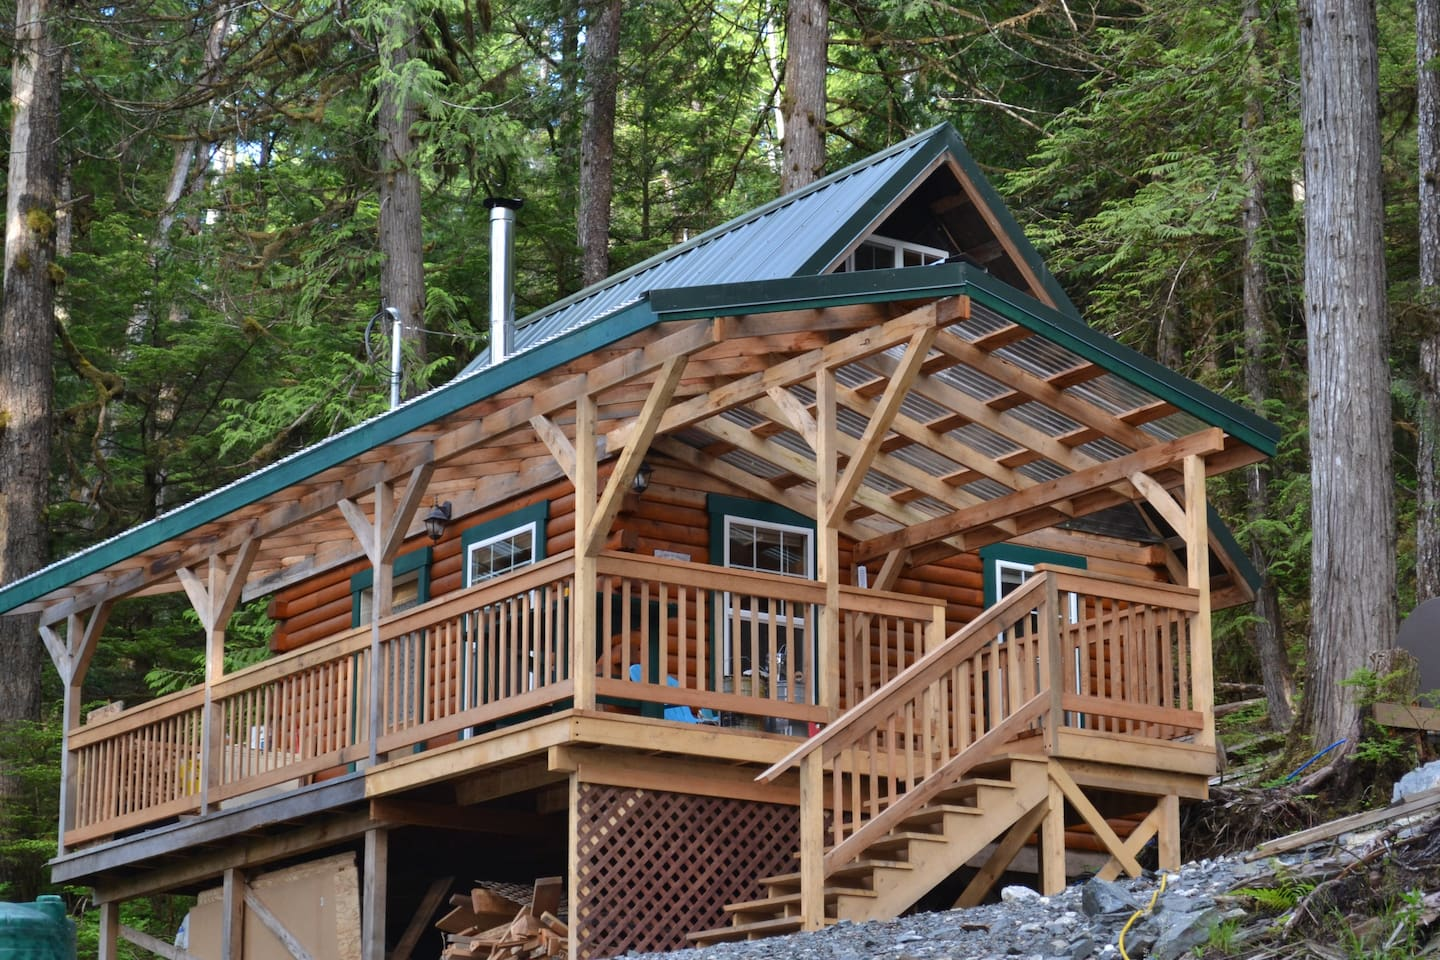 Lots of covered decks from which to enjoy the peaceful surroundings.